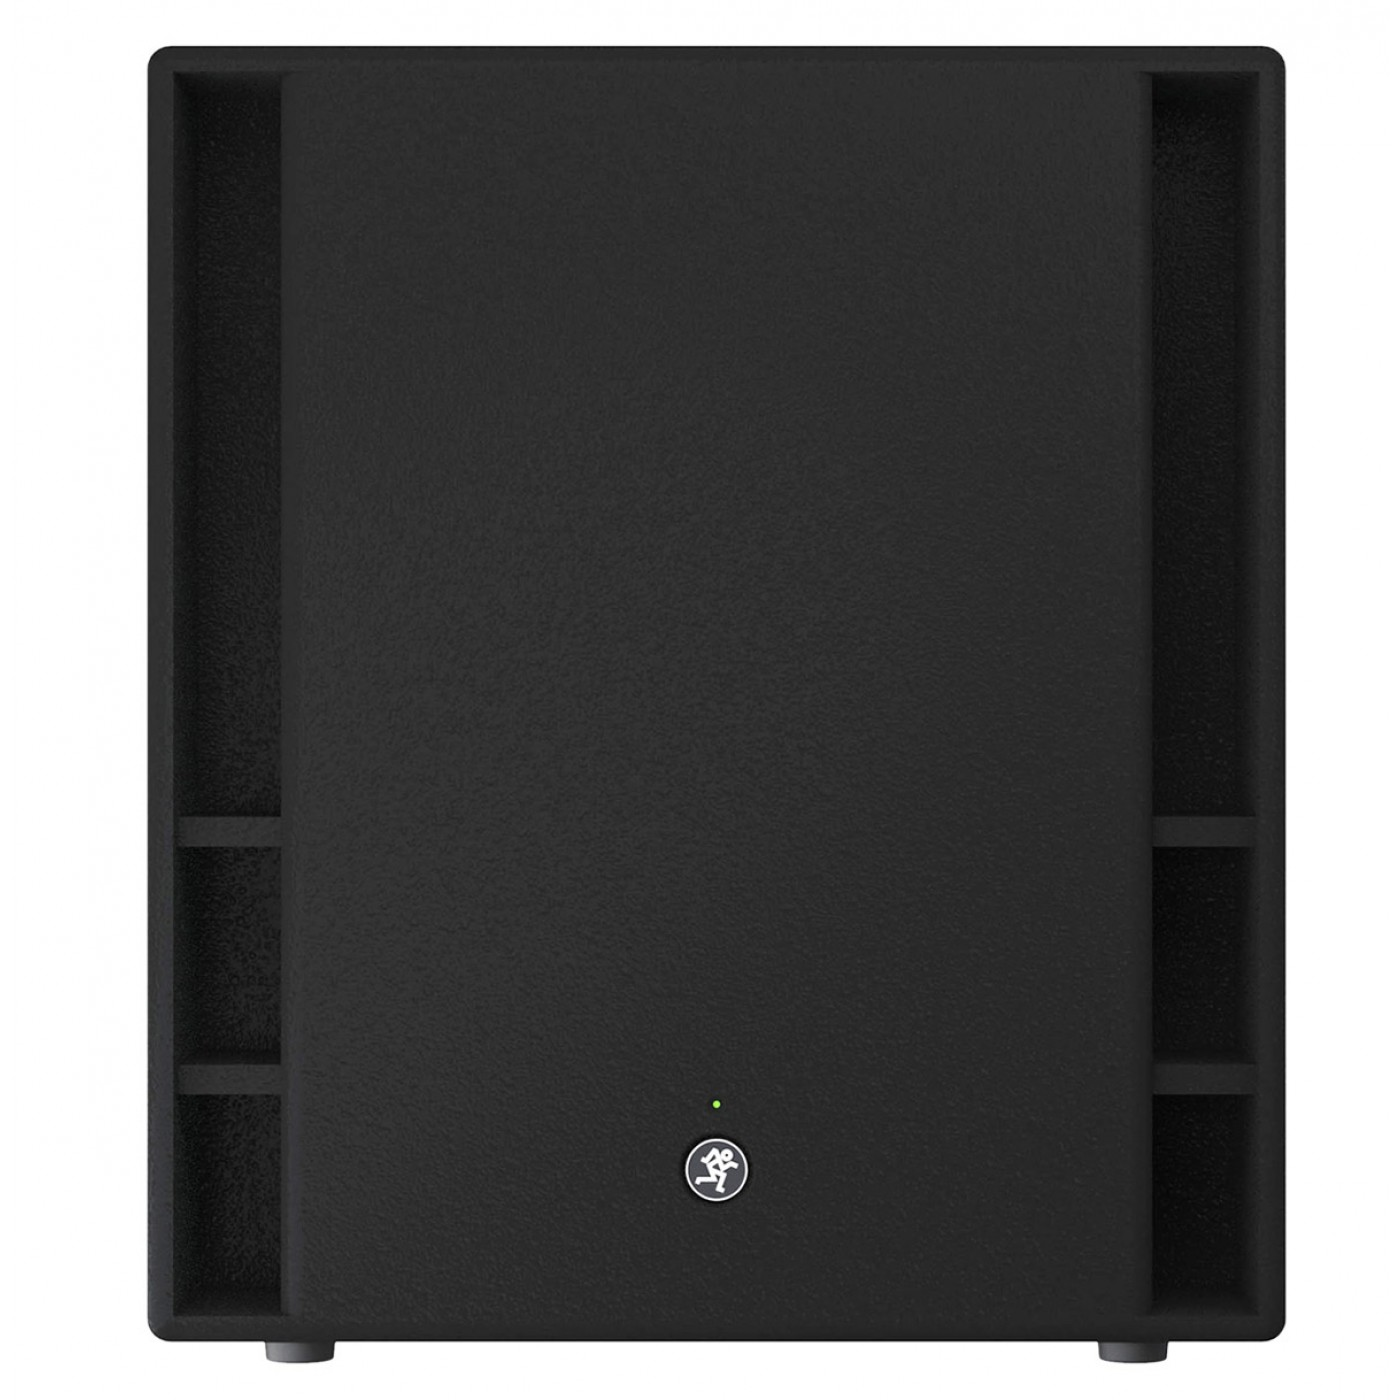 Mackie THUMP 18S Active Subwoofer | Rage Audio